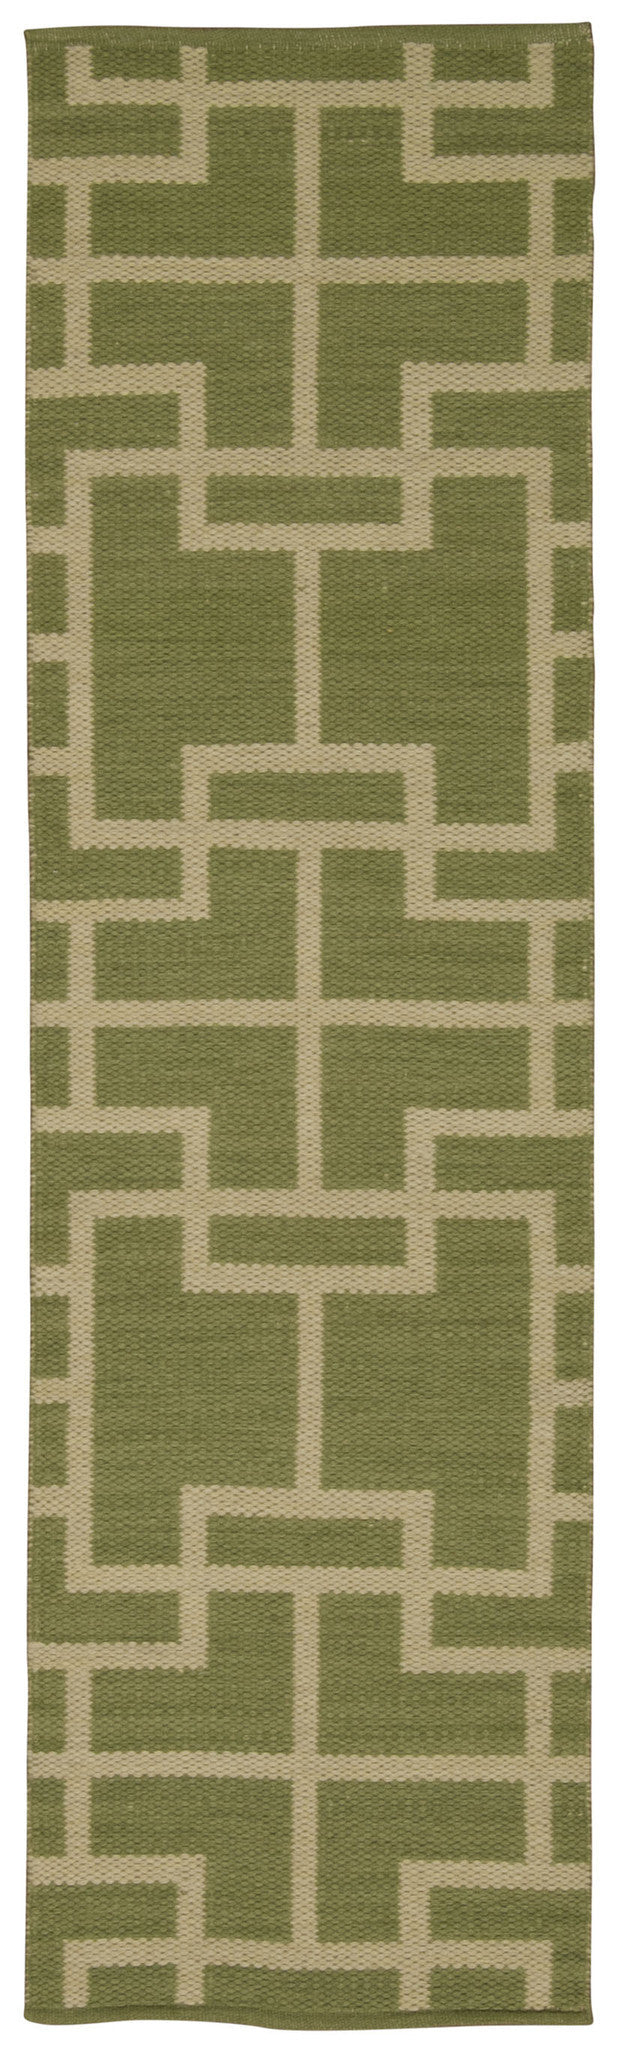 Barclay Butera Maze Lemon Grass Area Rug By Nourison MAZ02 LEGRA (Runner) | BOGO USA